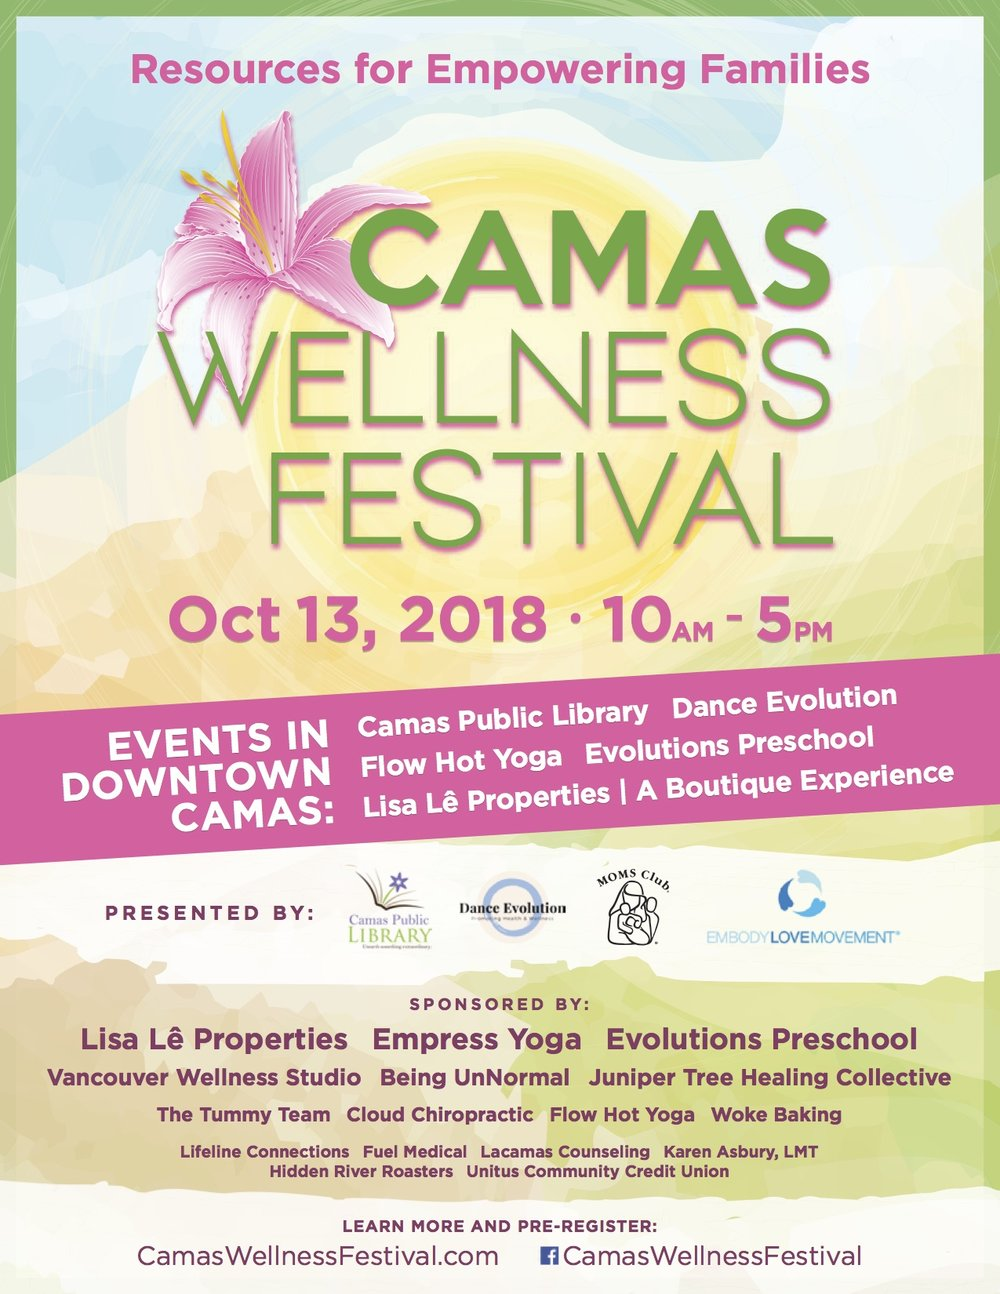 Camas Wellness Festival Flyer.jpeg